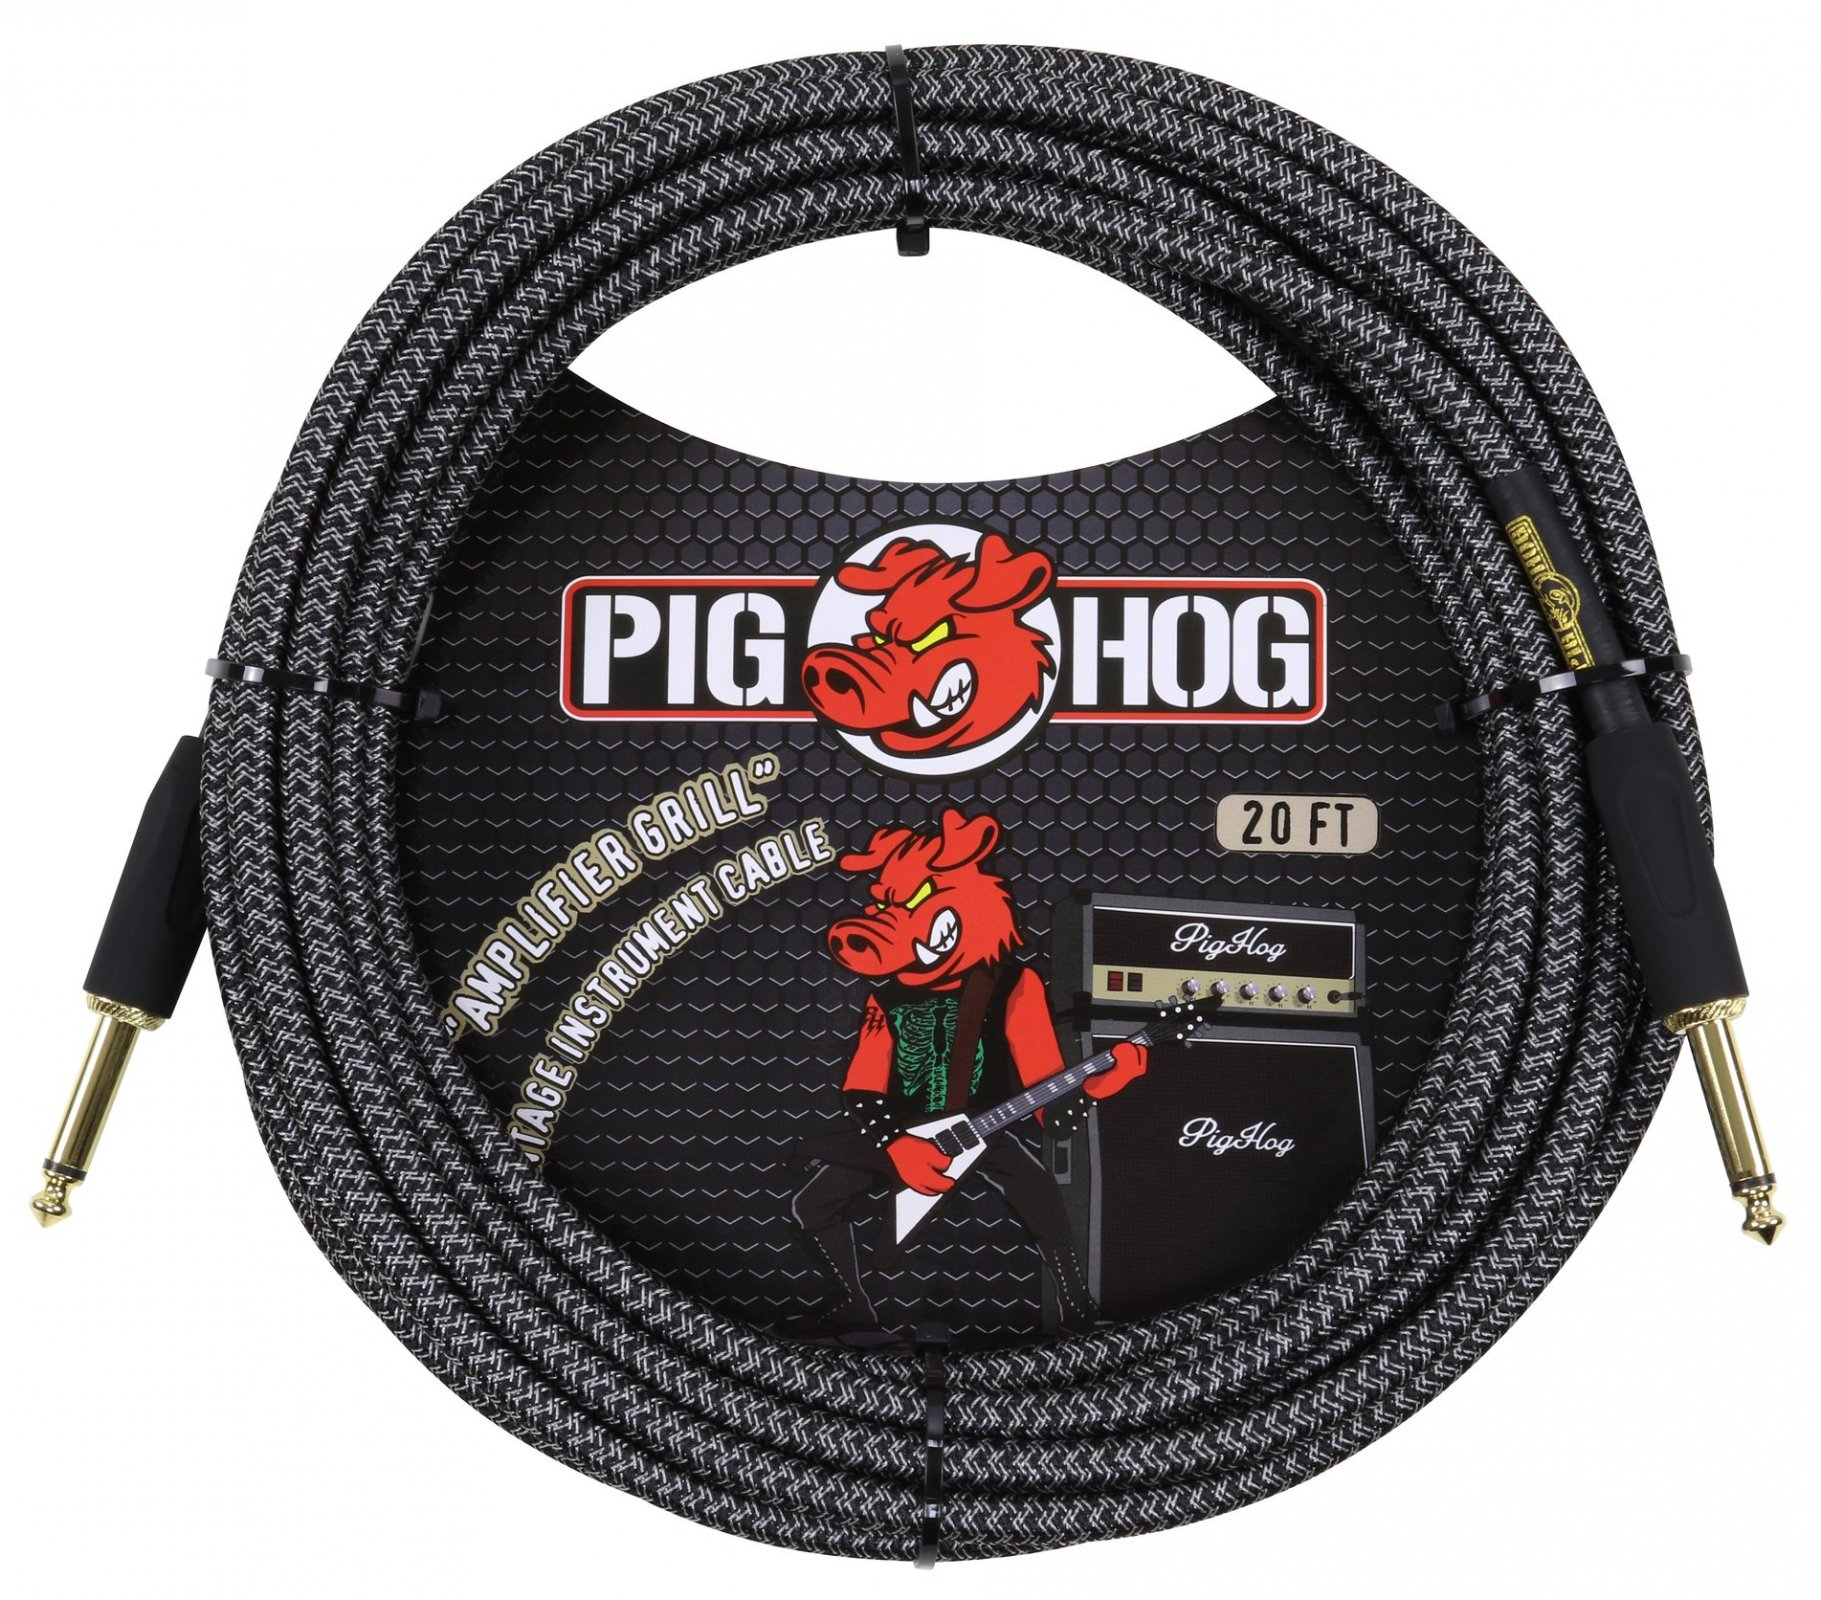 Pig Hog Amp Grill 20ft Instrument Cable